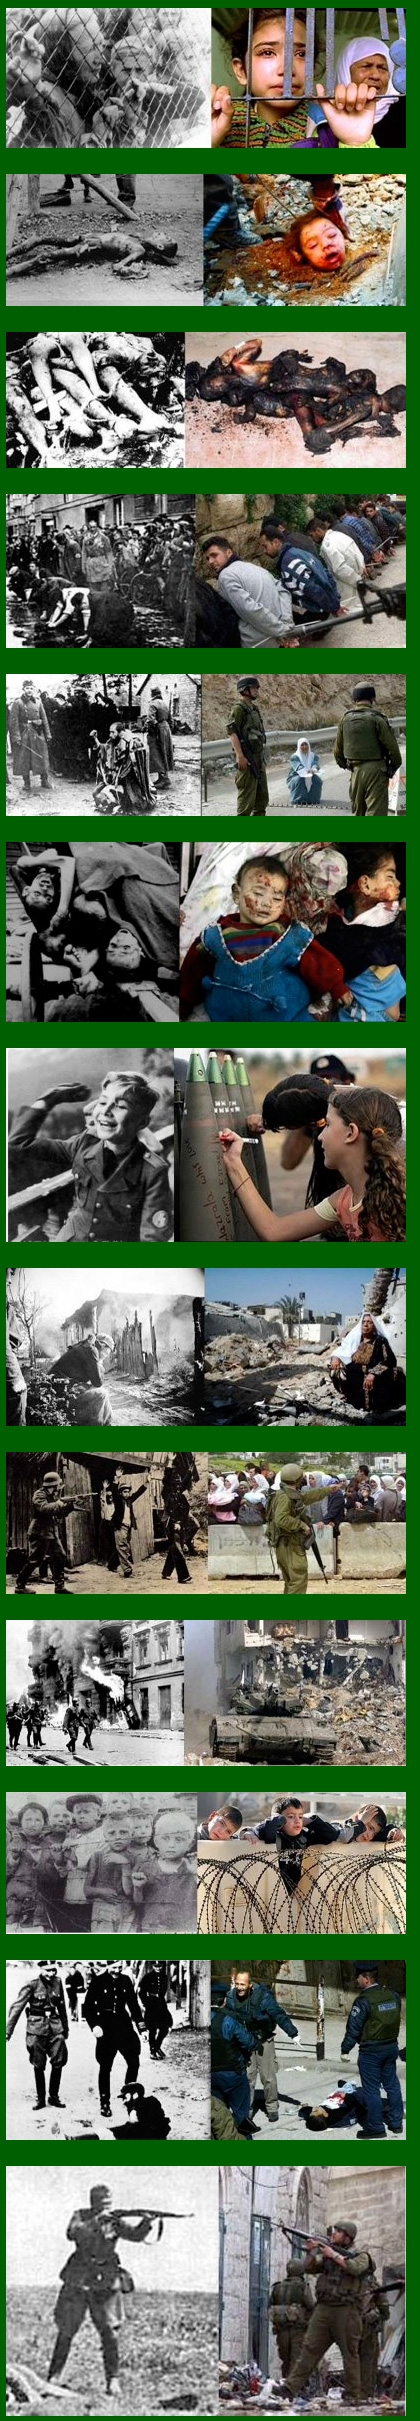 lebanese-blogger-forum-gaza-the-holocaust-a-comparison-20090121